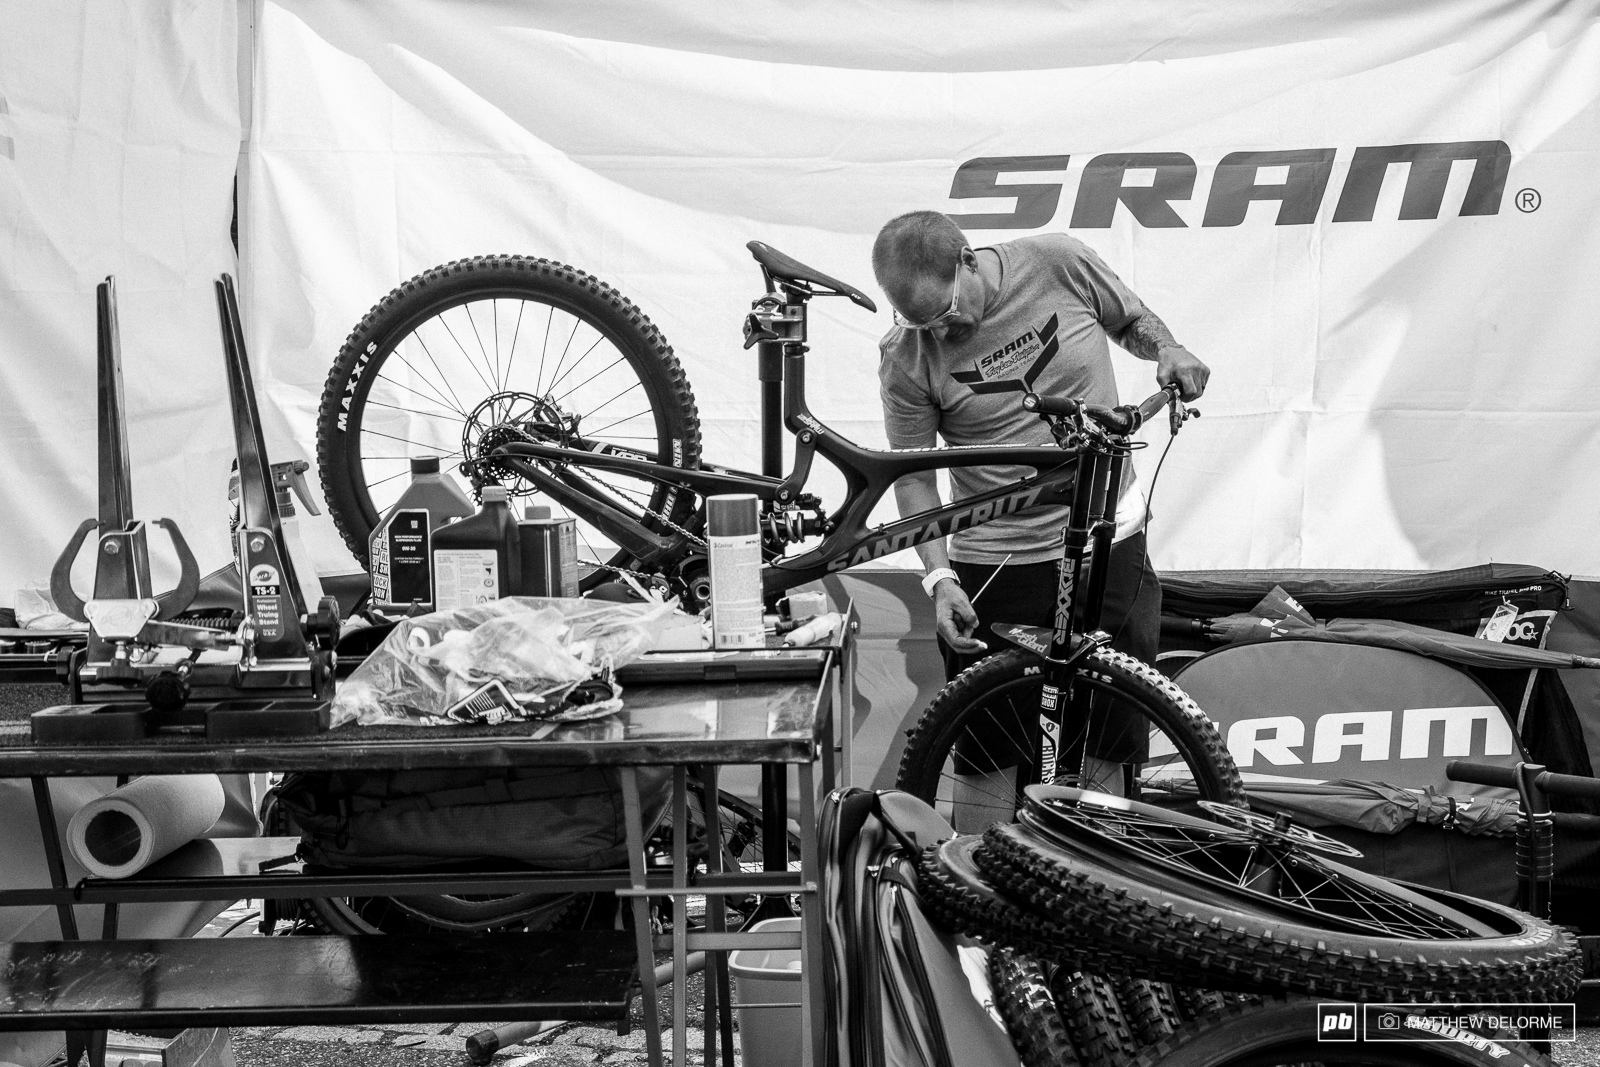 Luca Shaw s bike getting top treatment from SRAM s finest.